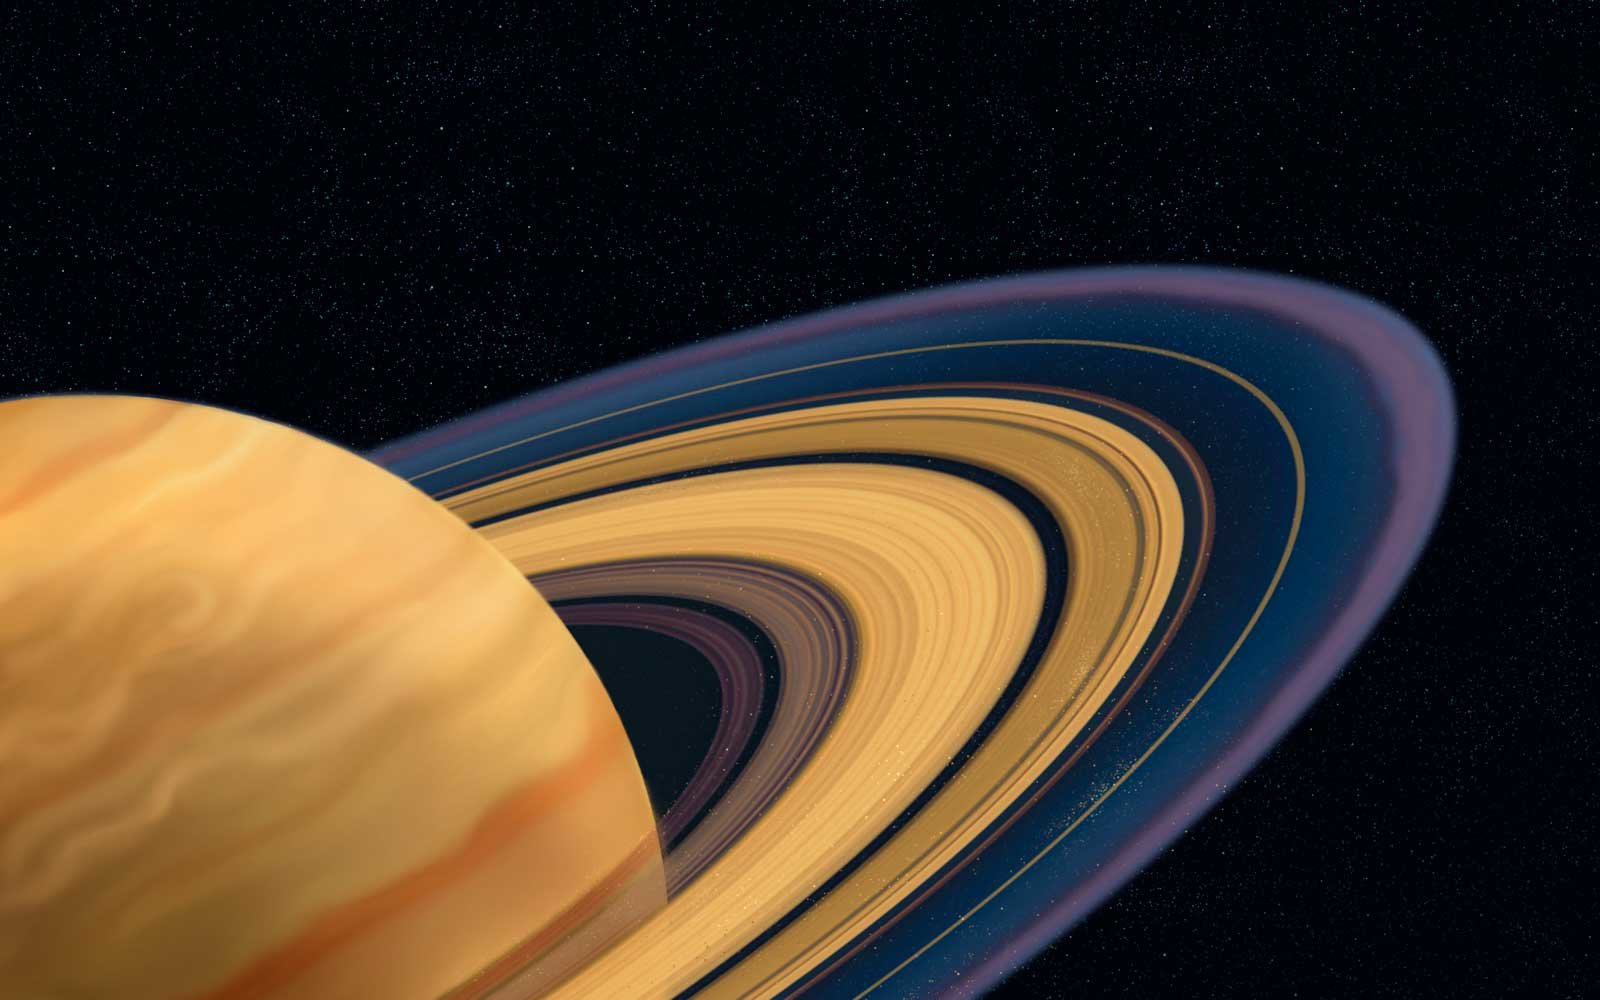 Saturn's rings cassini